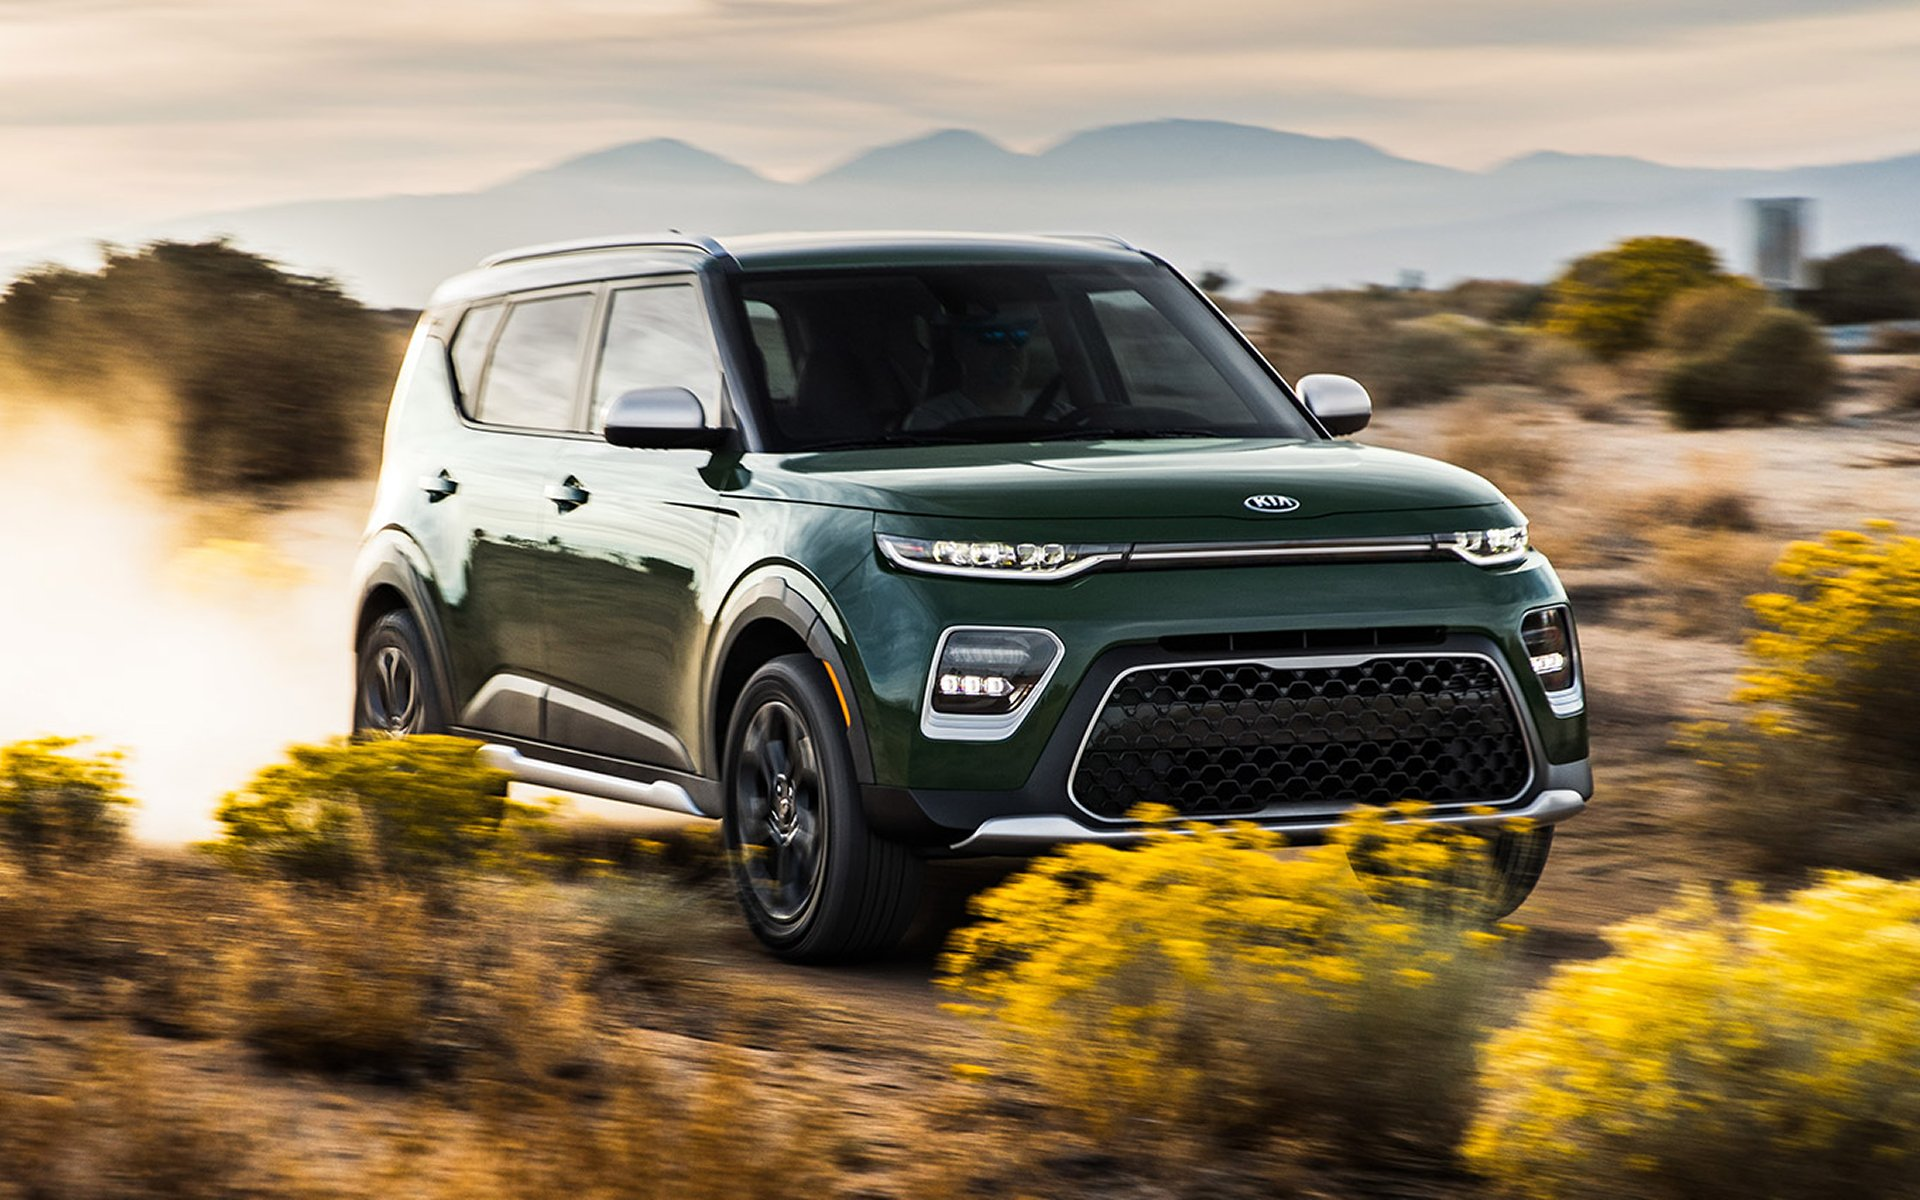 2020 Kia Soul Coming Soon in San Antonio, TX